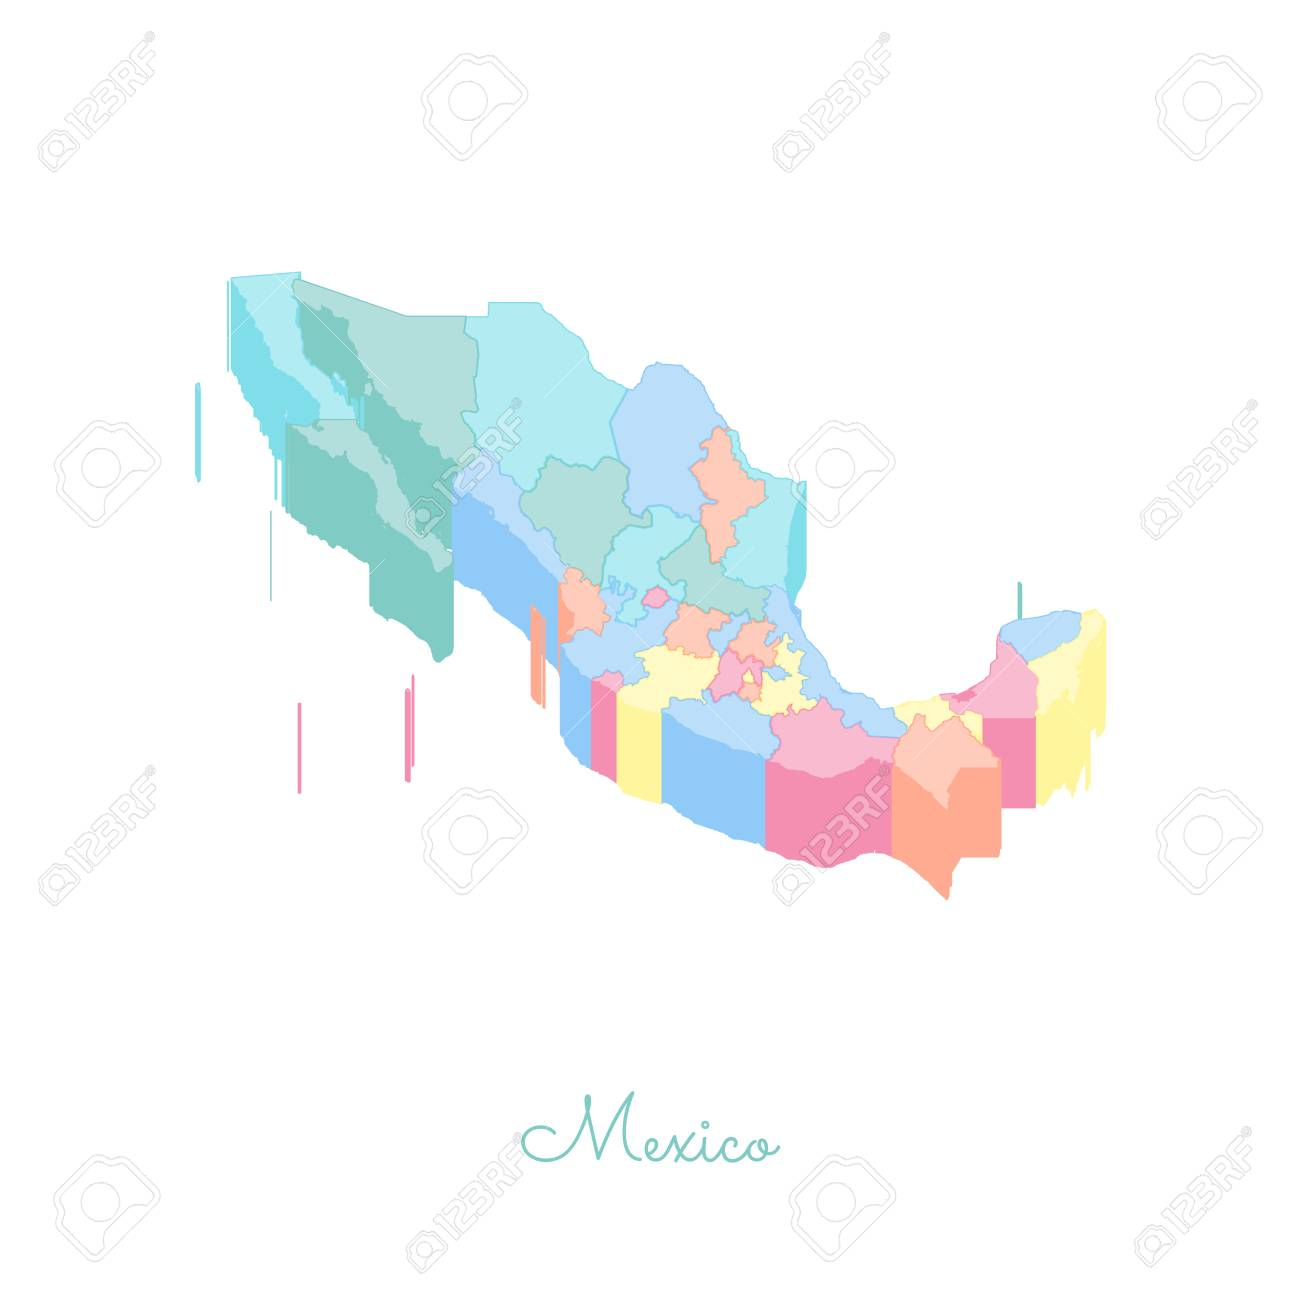 Mexico region map: colorful isometric top view. Detailed map..